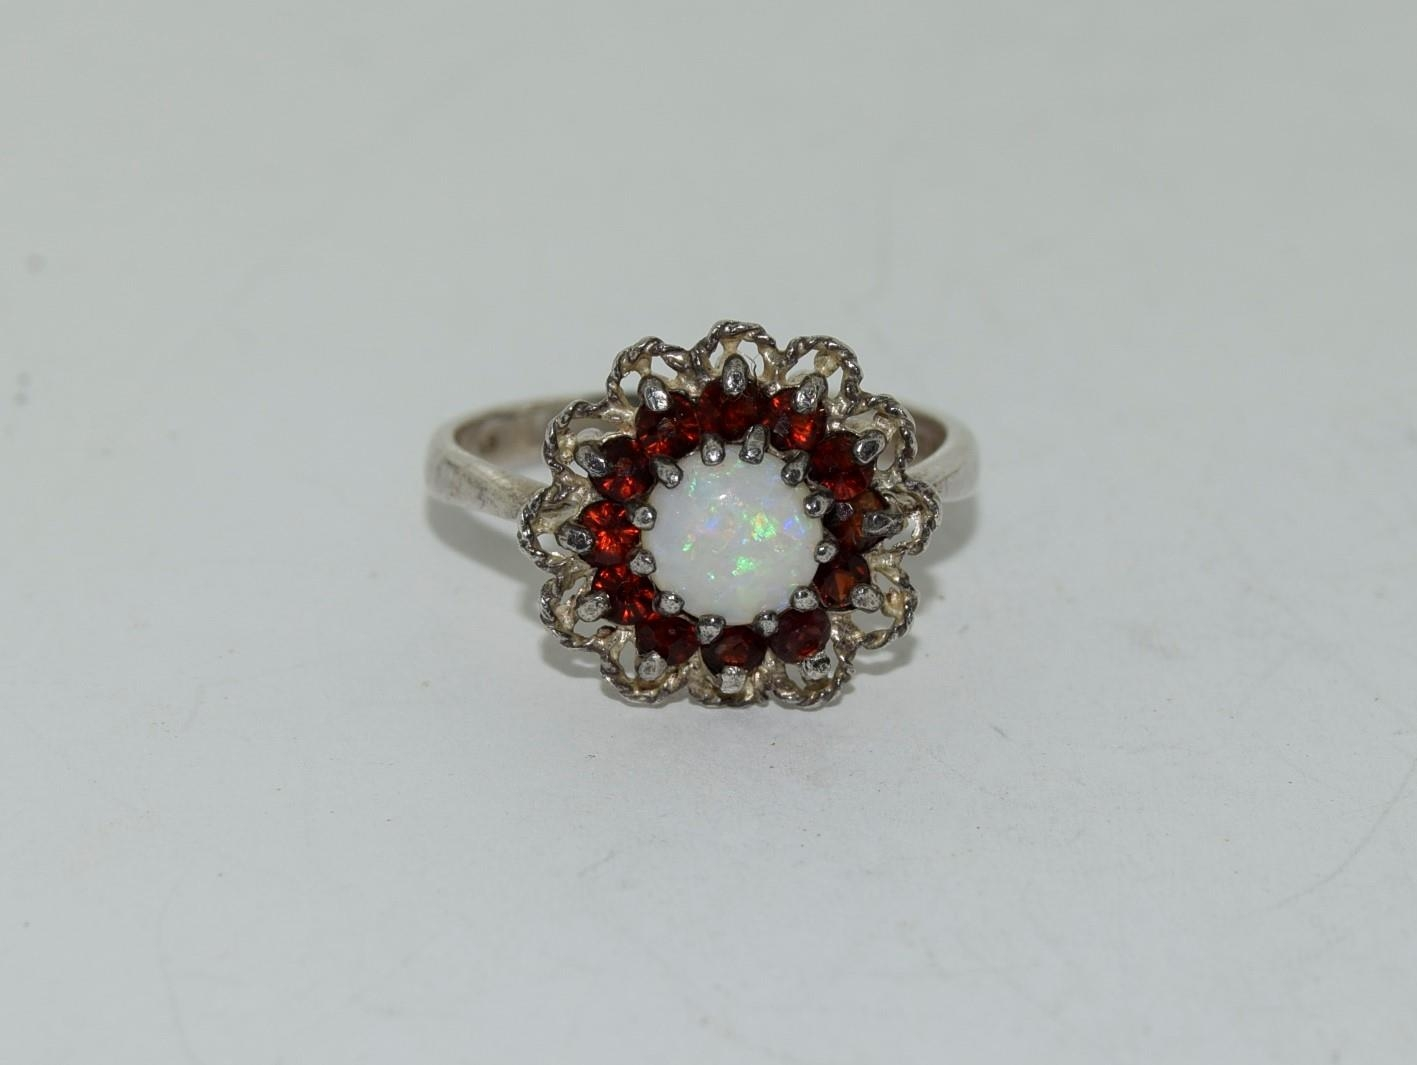 A Vintage and Opal/Garnet sterling silver daisy Ring, Size M.